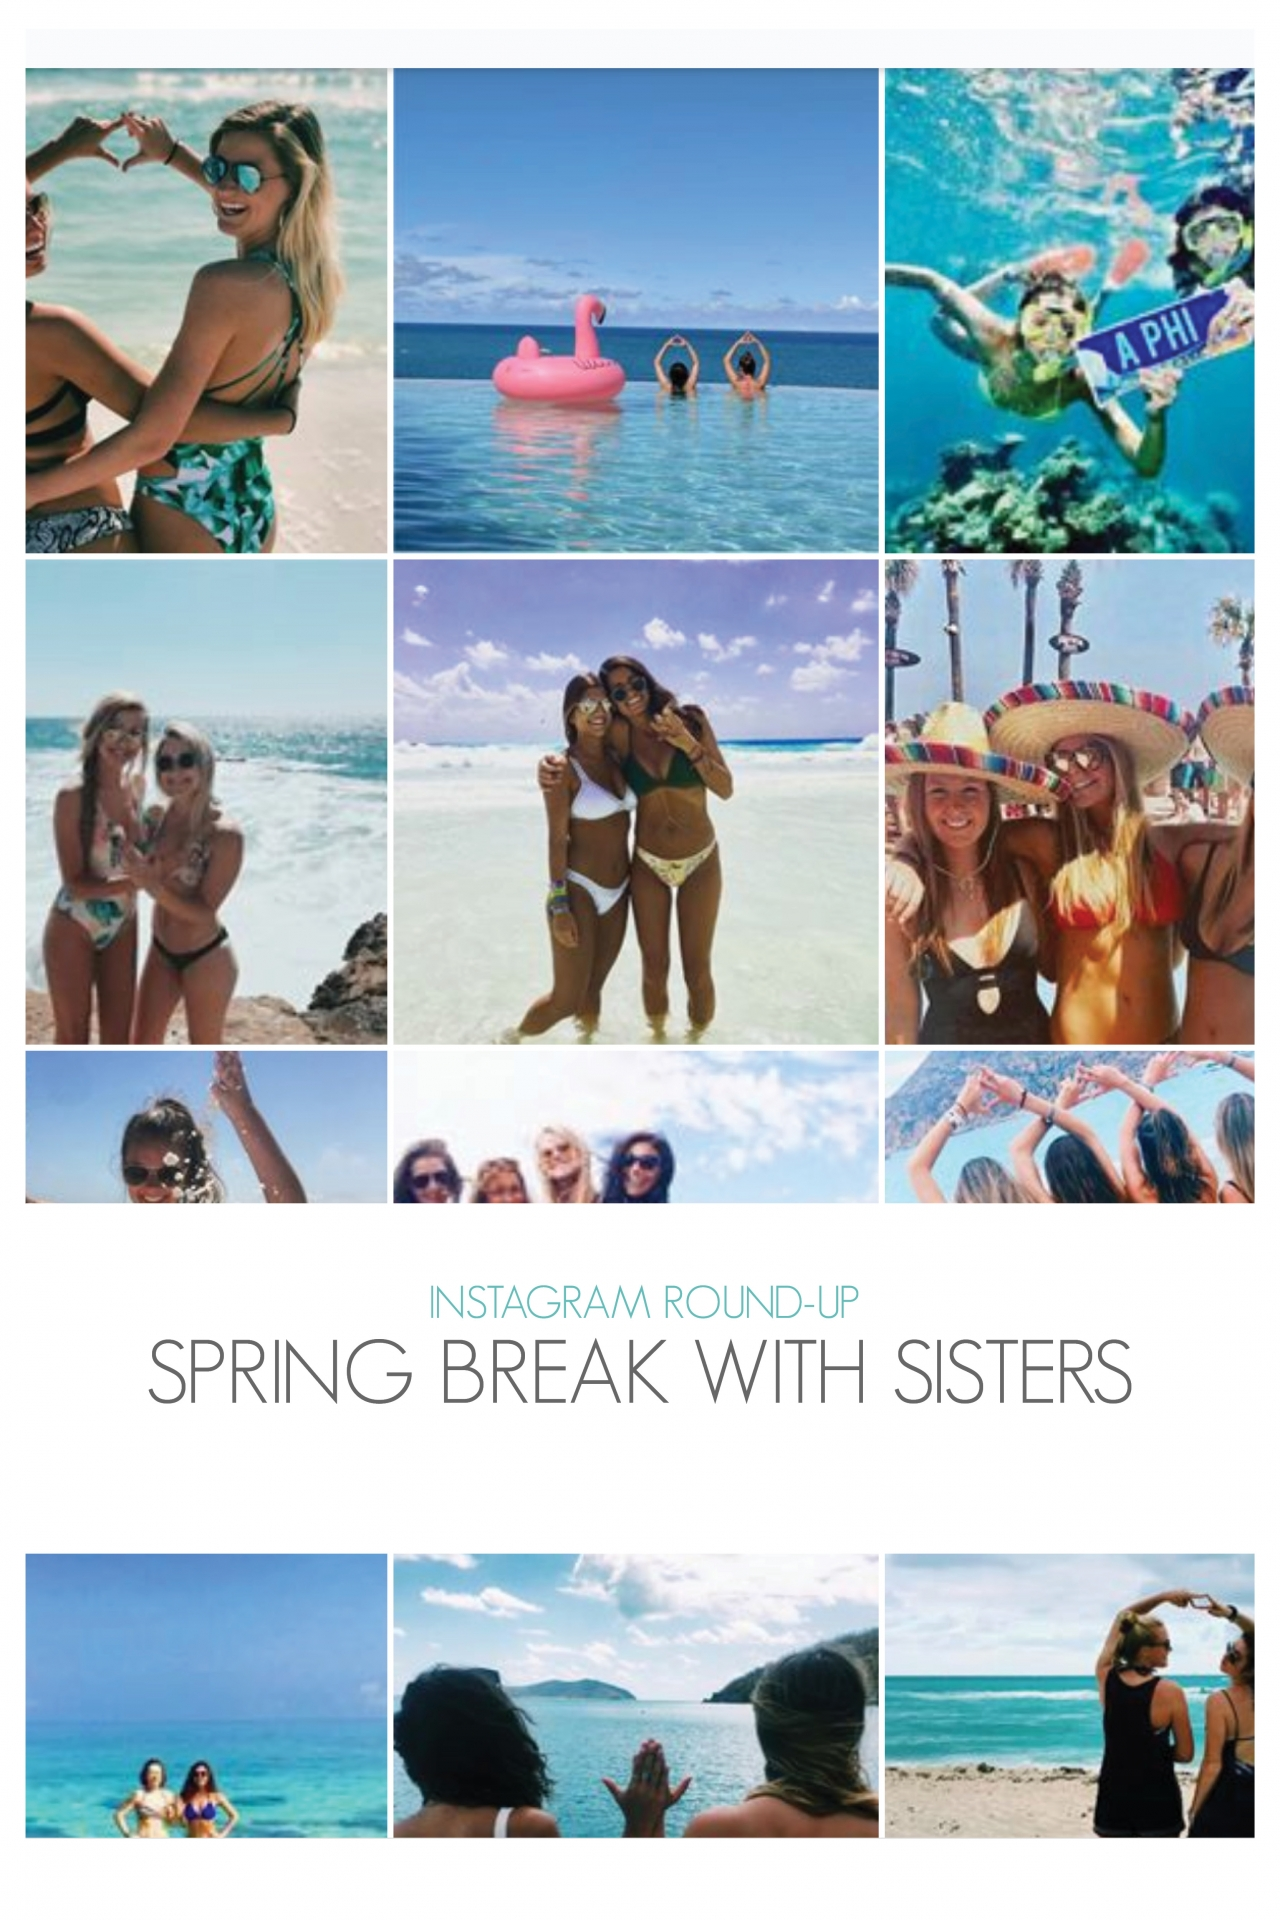 Instagram Round-Up Spring Break With Sisters